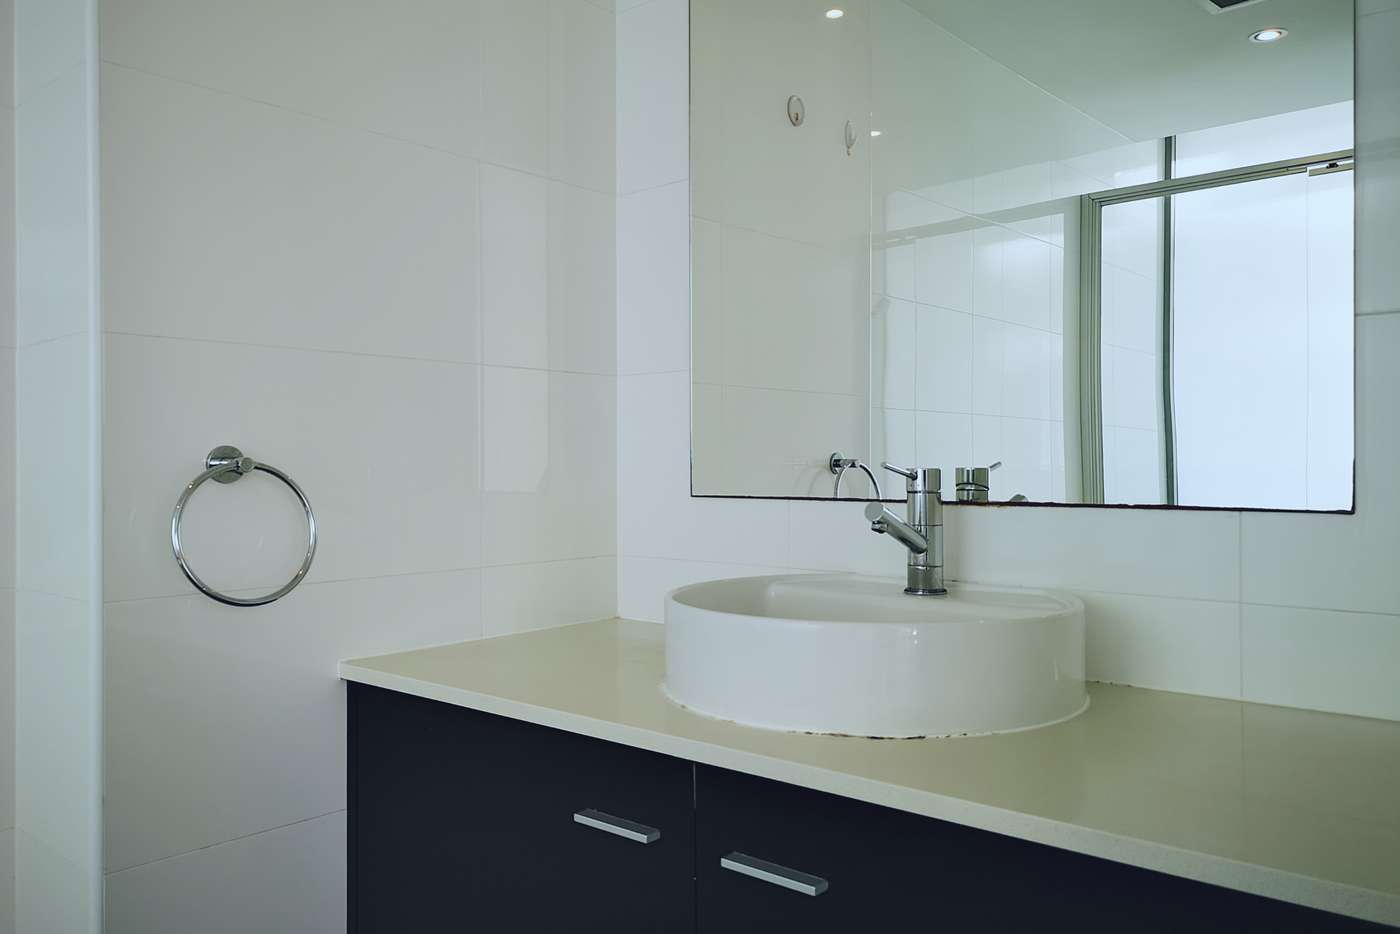 Sixth view of Homely apartment listing, 14/18 Market St, Rockdale NSW 2216